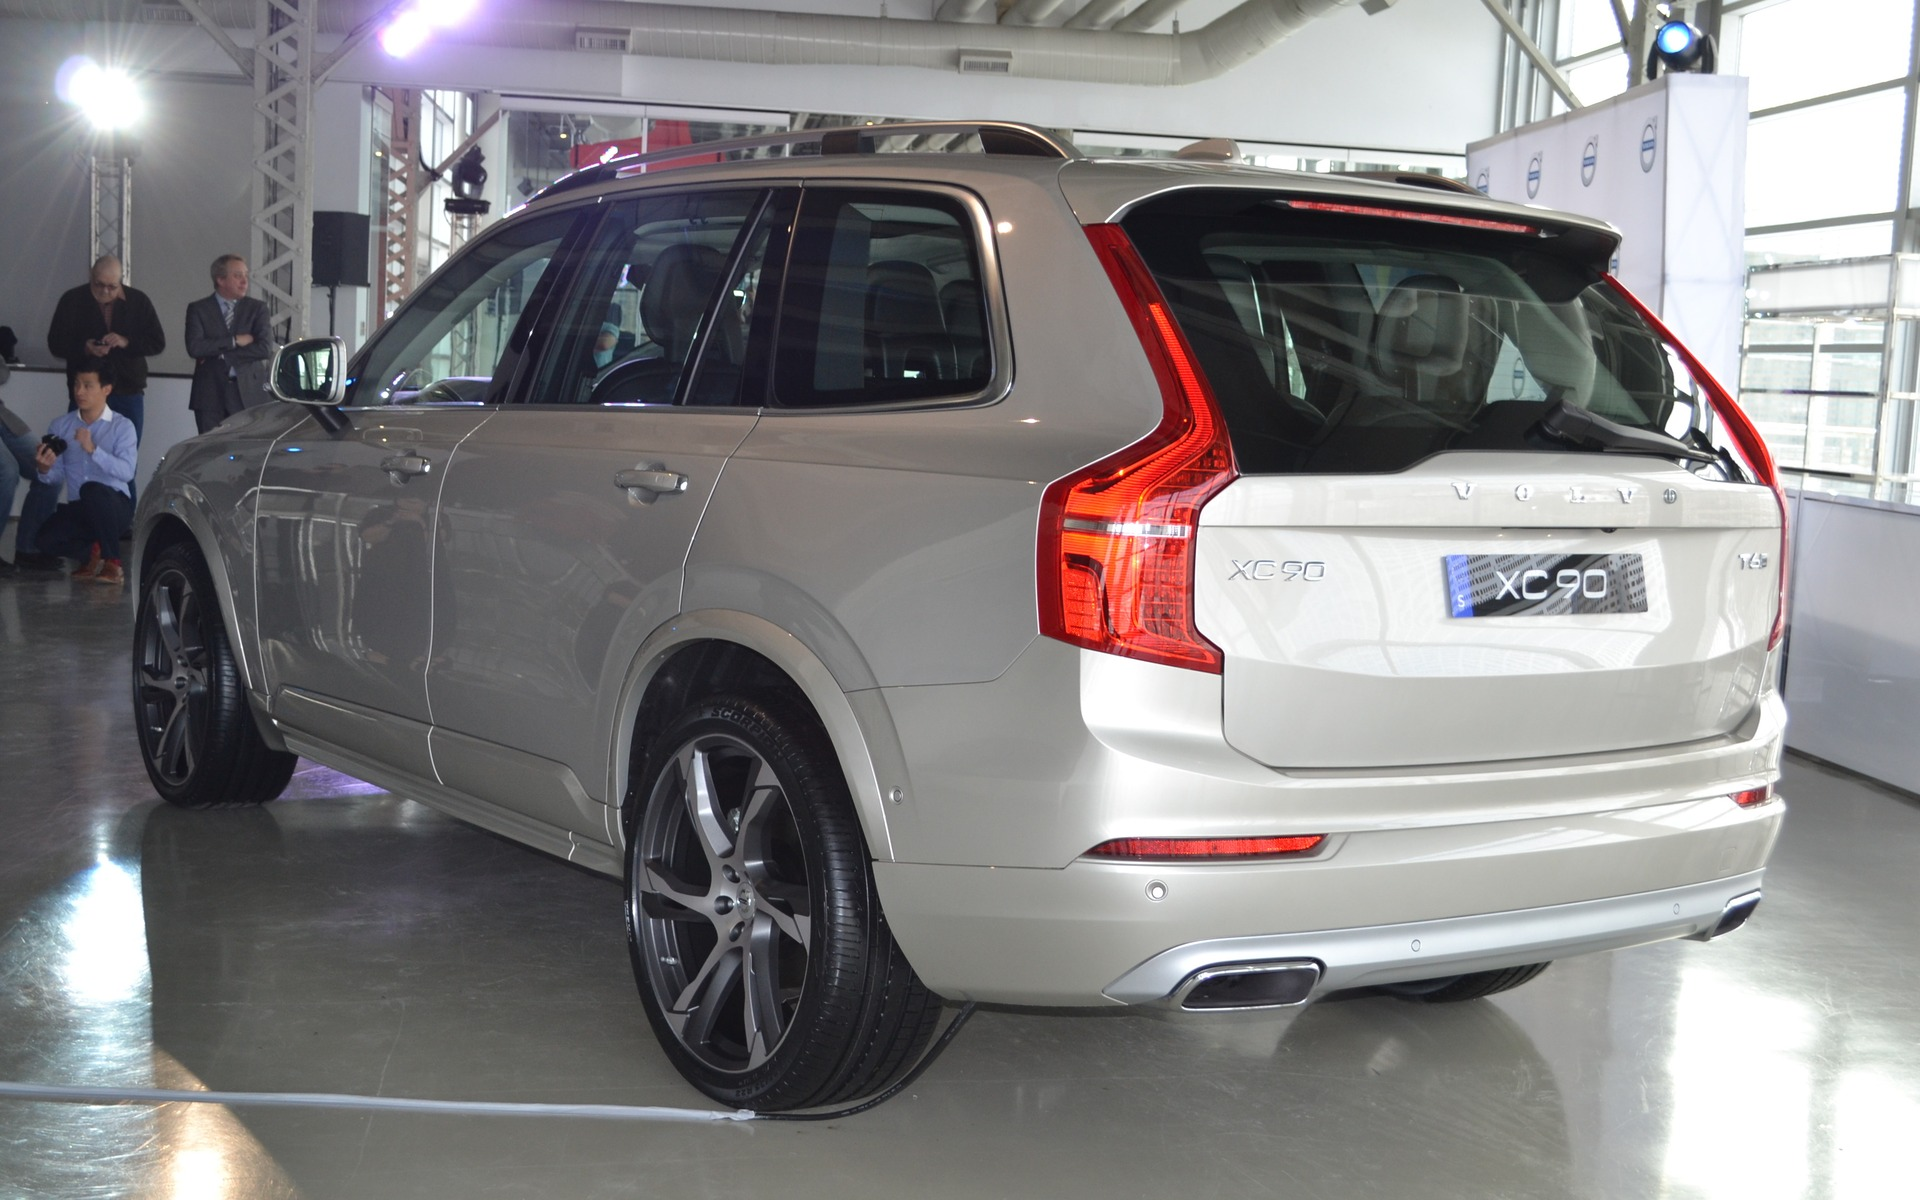 Volvo Xc90 Reviews >> Volvo Introduces The New 2016 XC90 And V60 Cross Country - 7/17